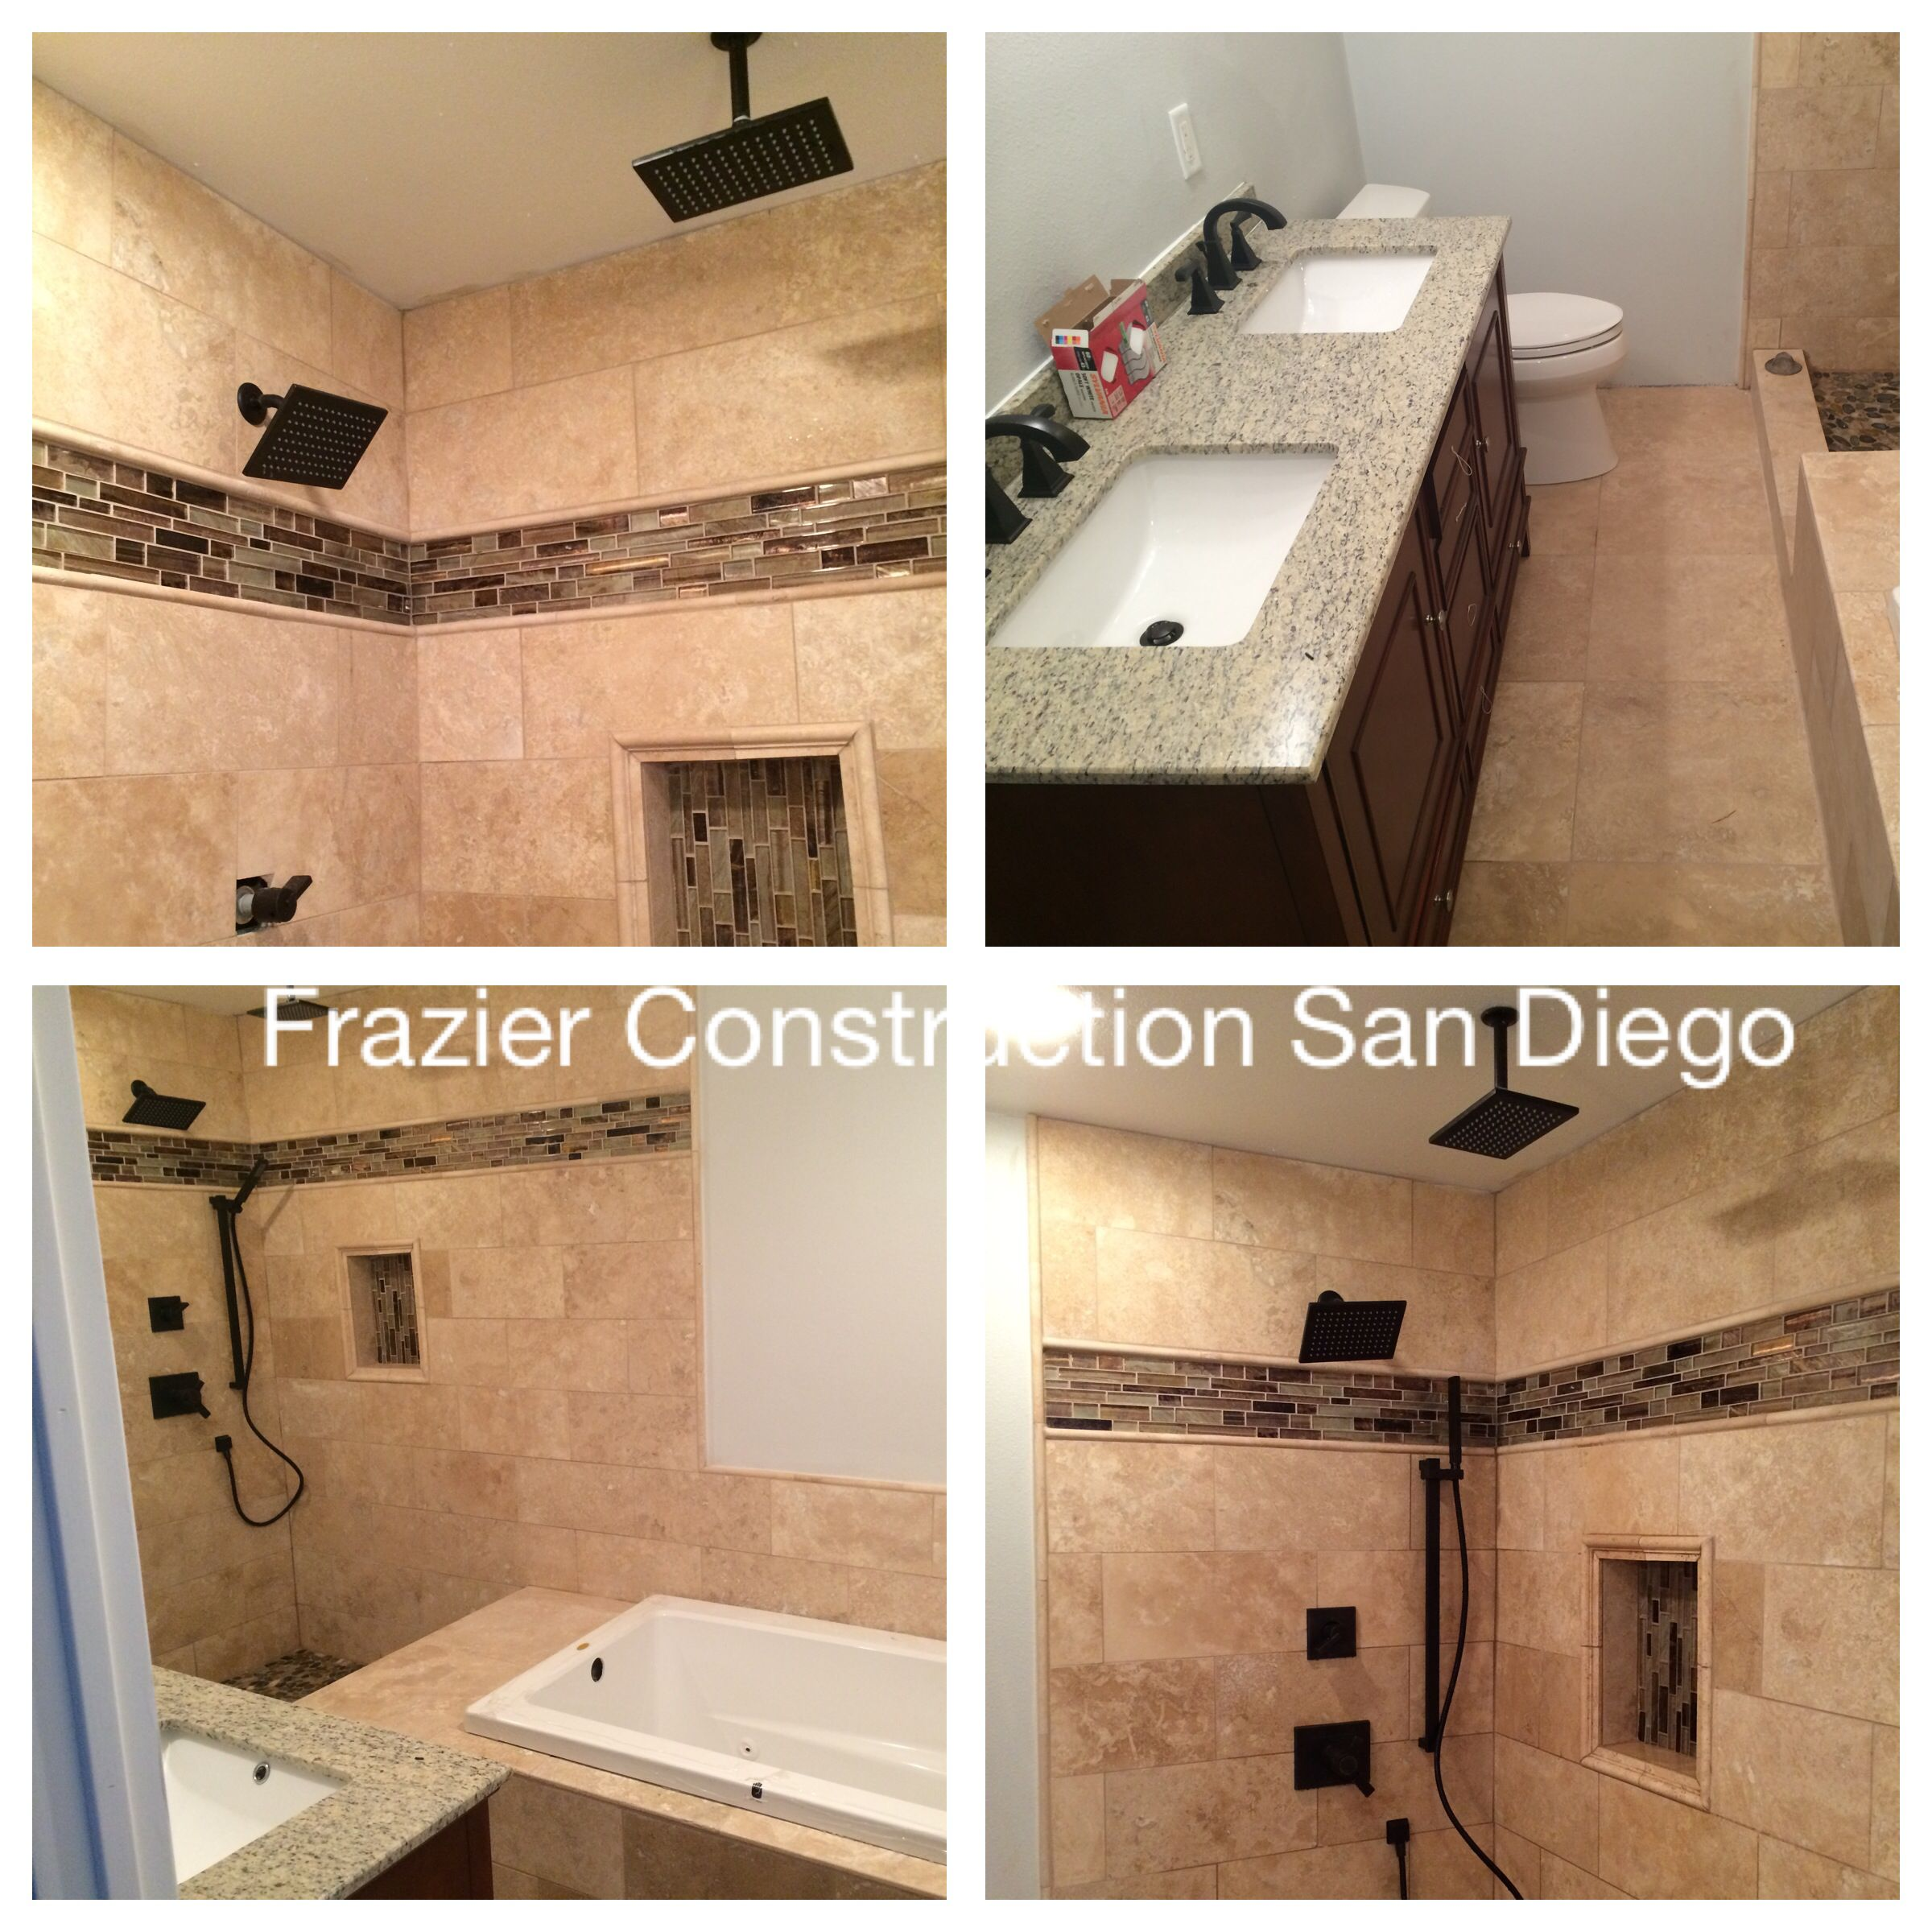 Latest bathroom expansion and remodel complete with new custom